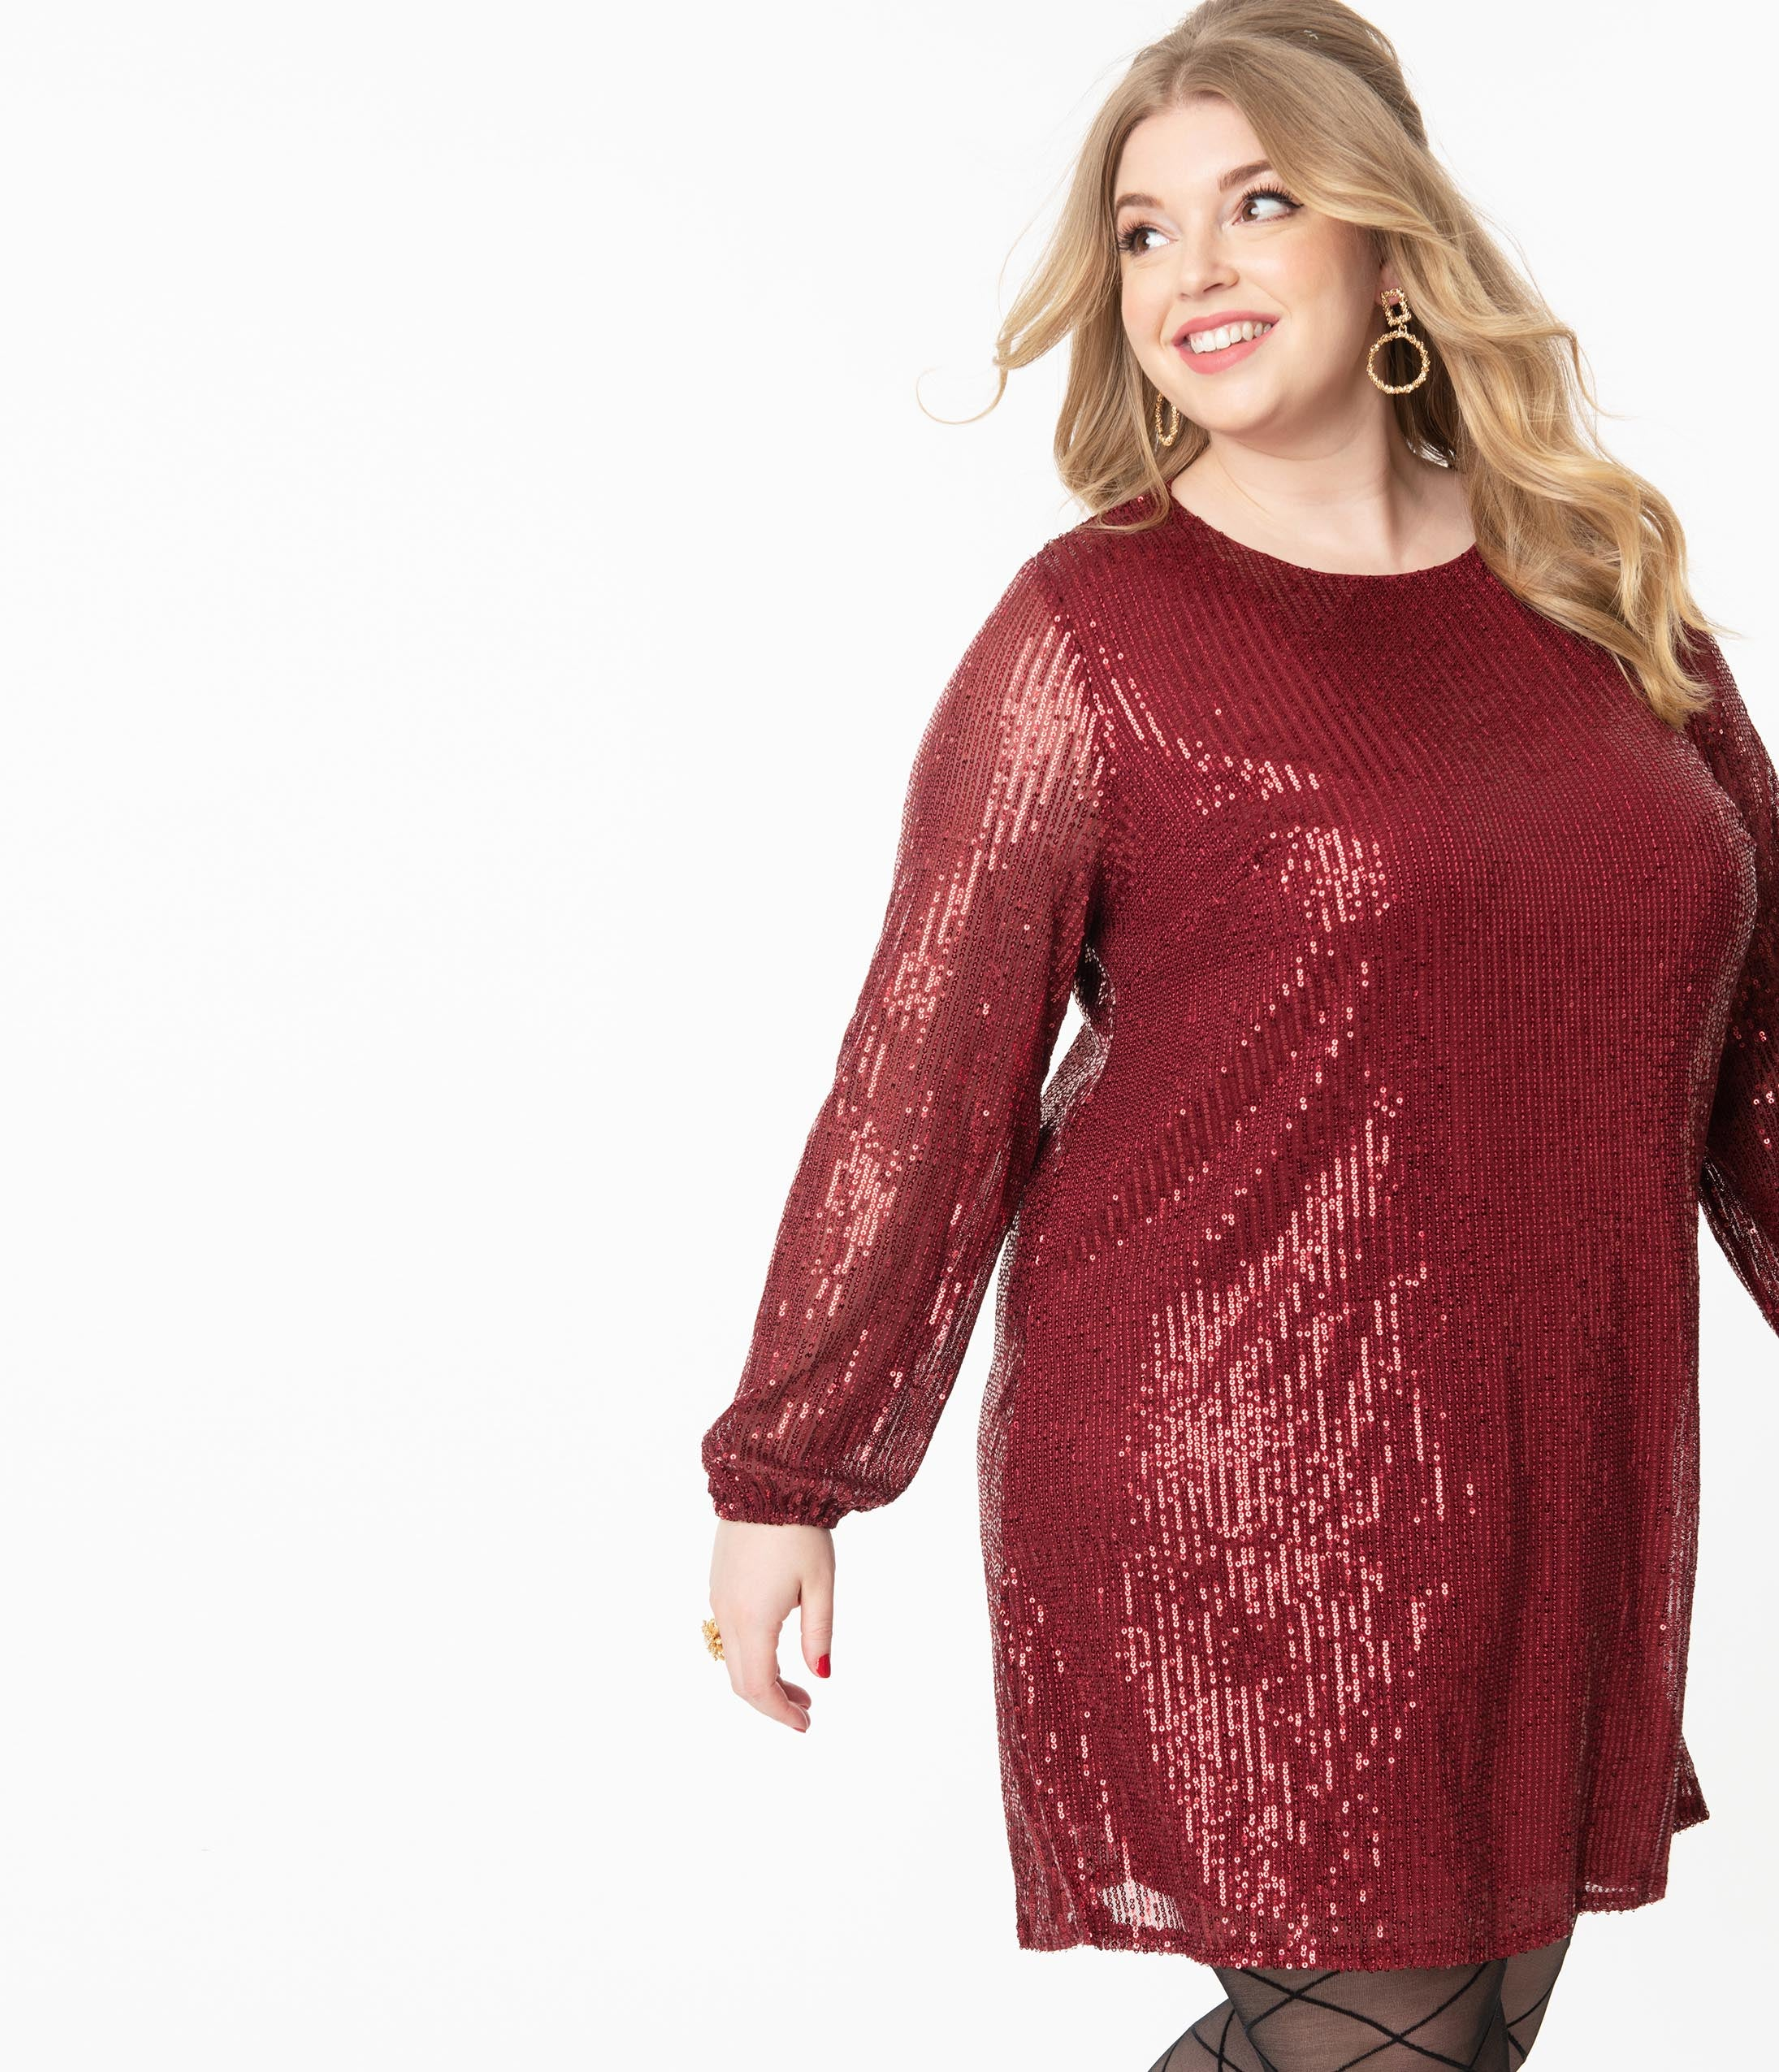 70s Prom, Formal, Evening, Party Dresses Plus Size Wine Sequin Long Sleeve Shift Dress $62.00 AT vintagedancer.com